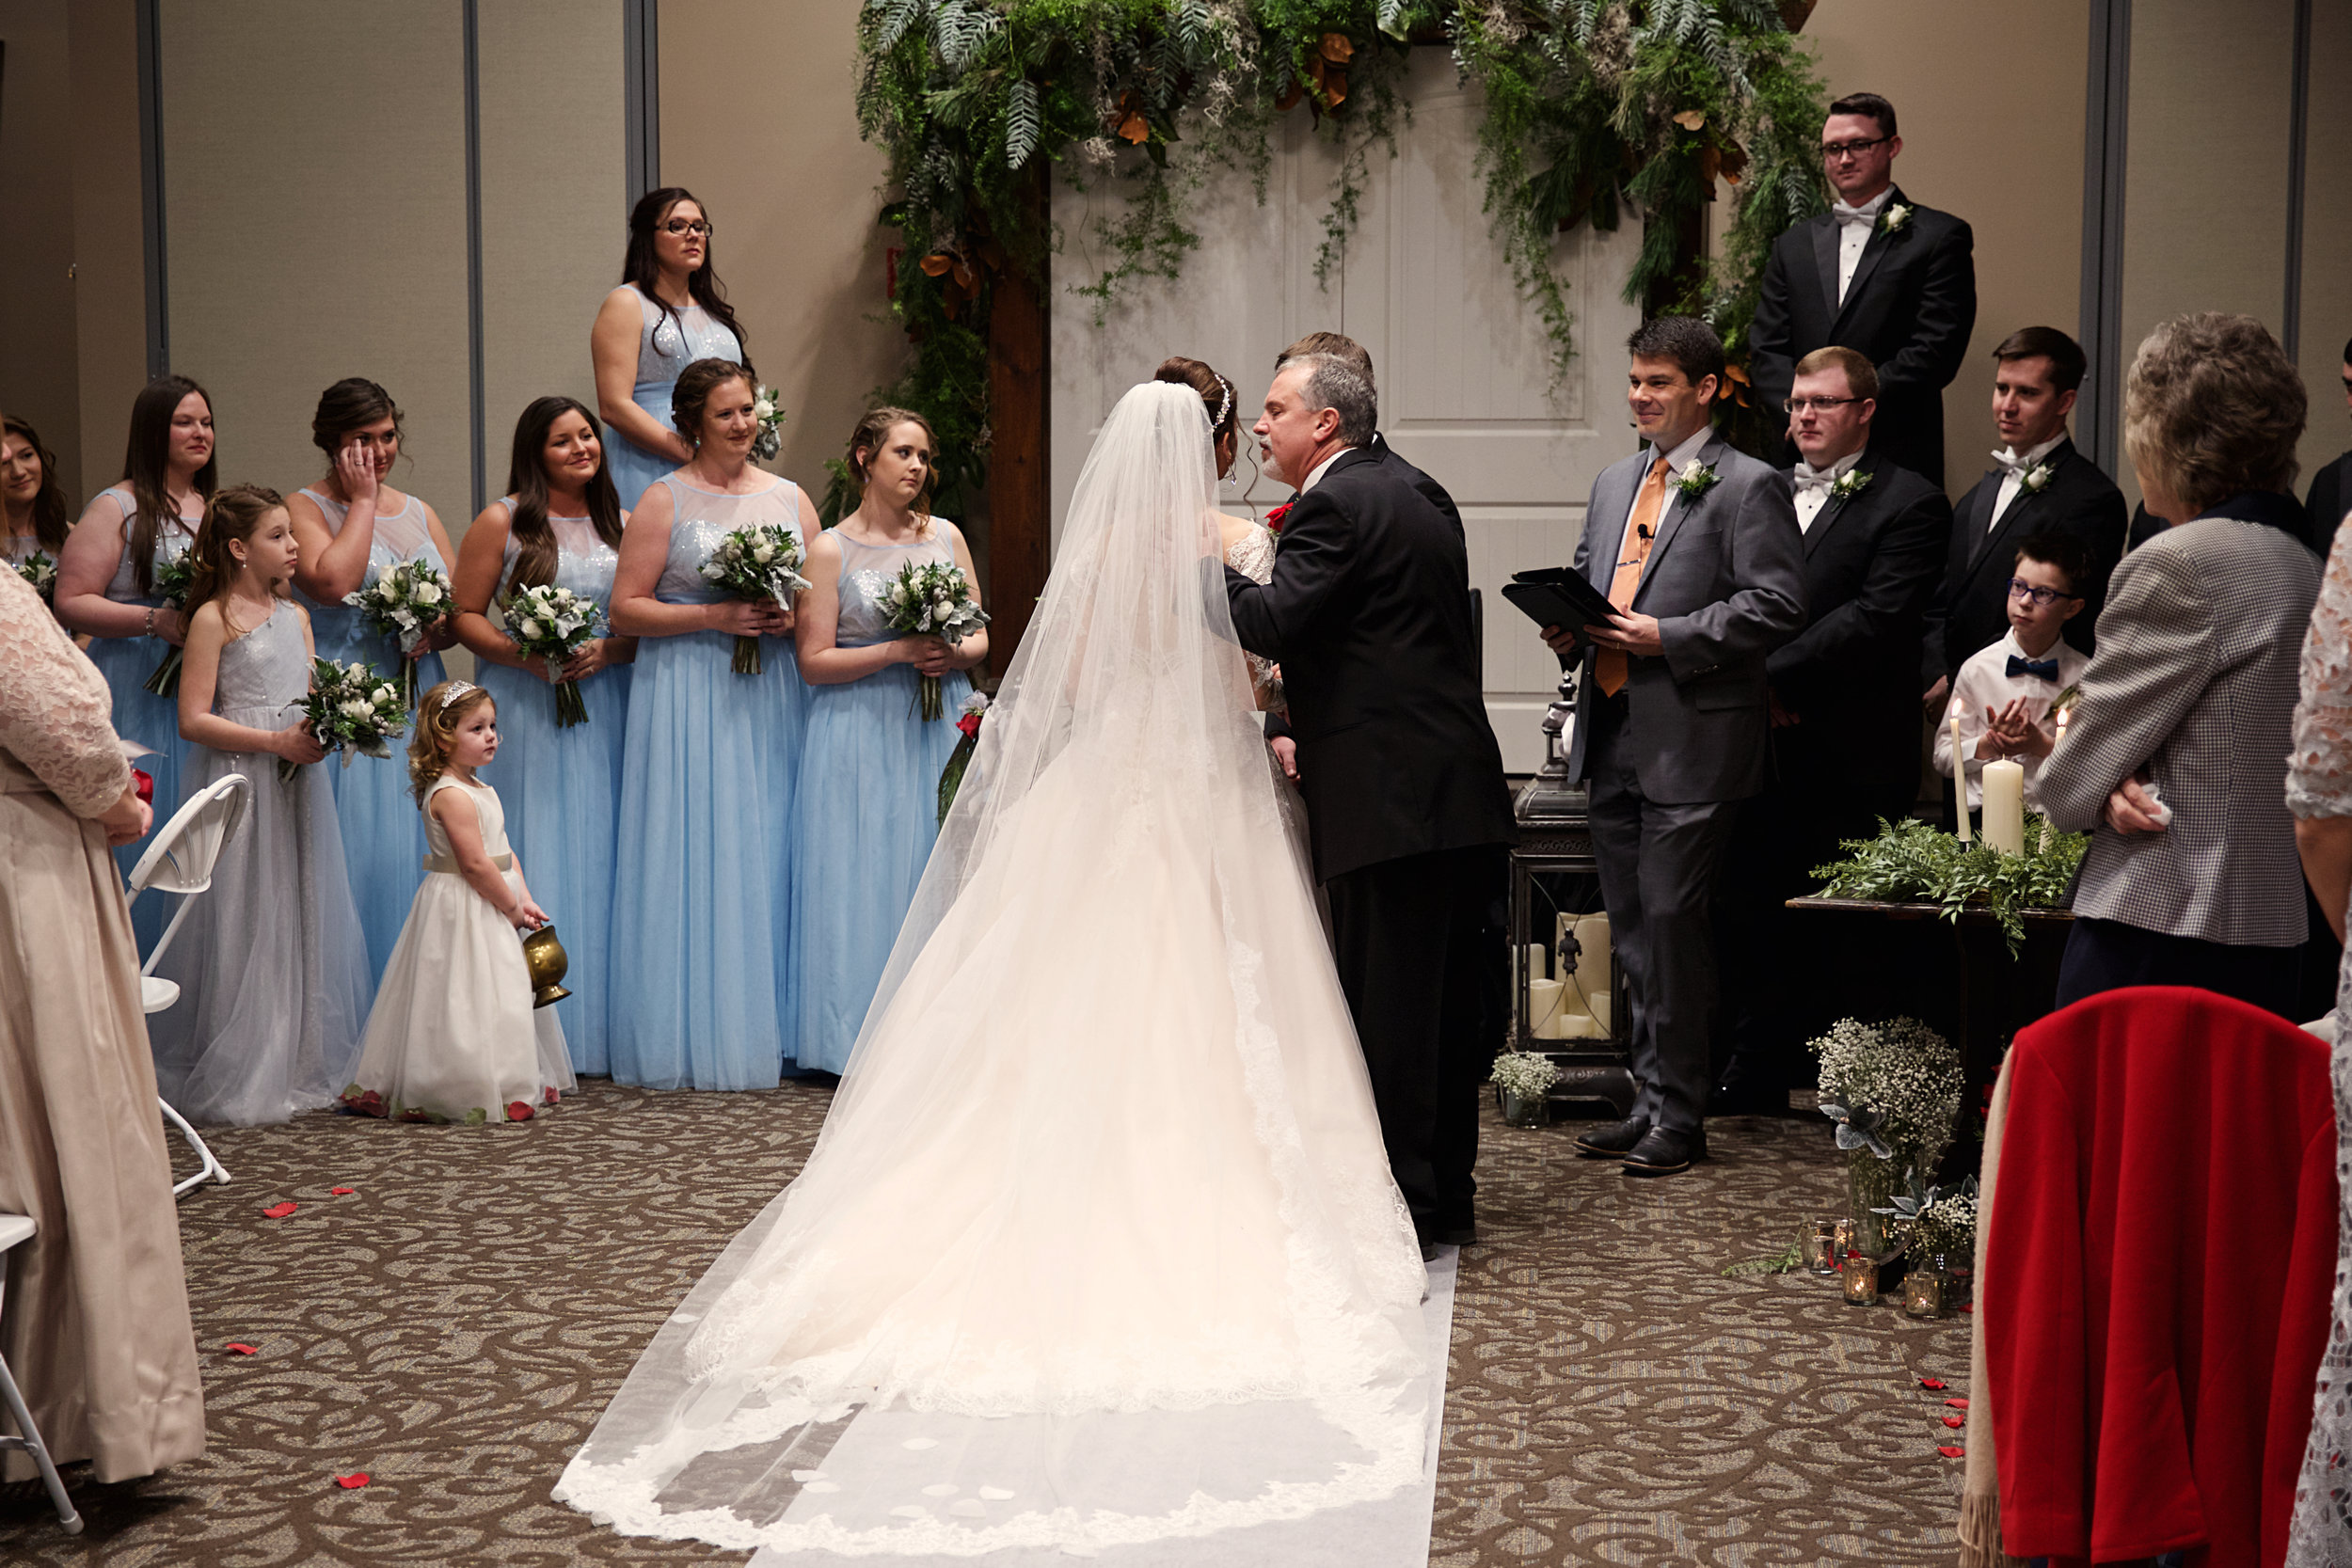 16-father-of-the-brides-kiss.jpg